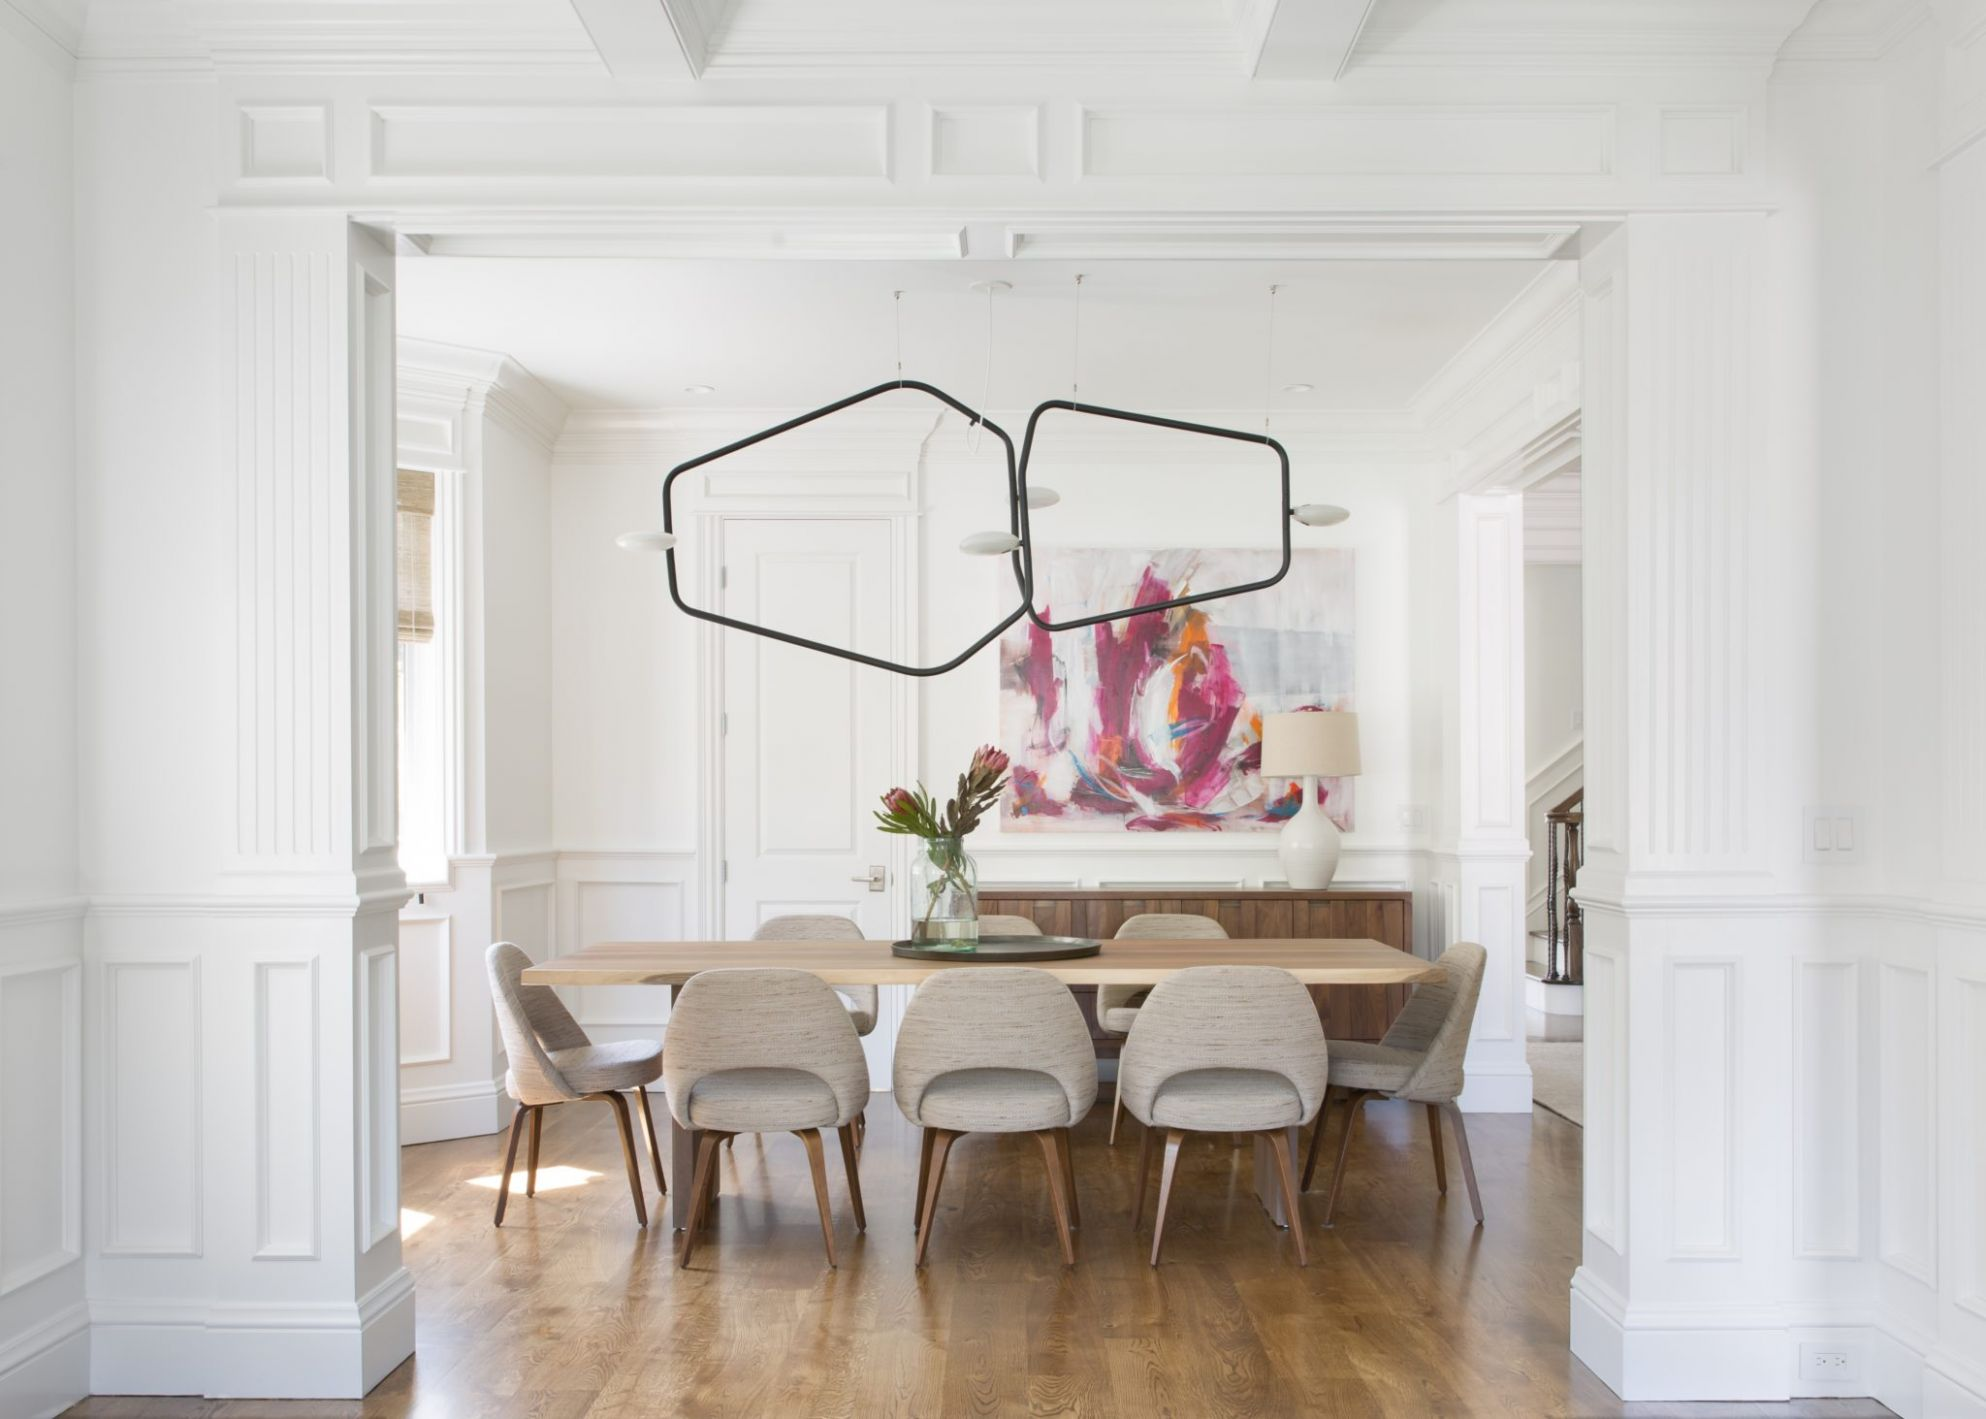 8 Dining Rooms with Wainscoting - Chairish Blog - dining room ideas with wainscoting